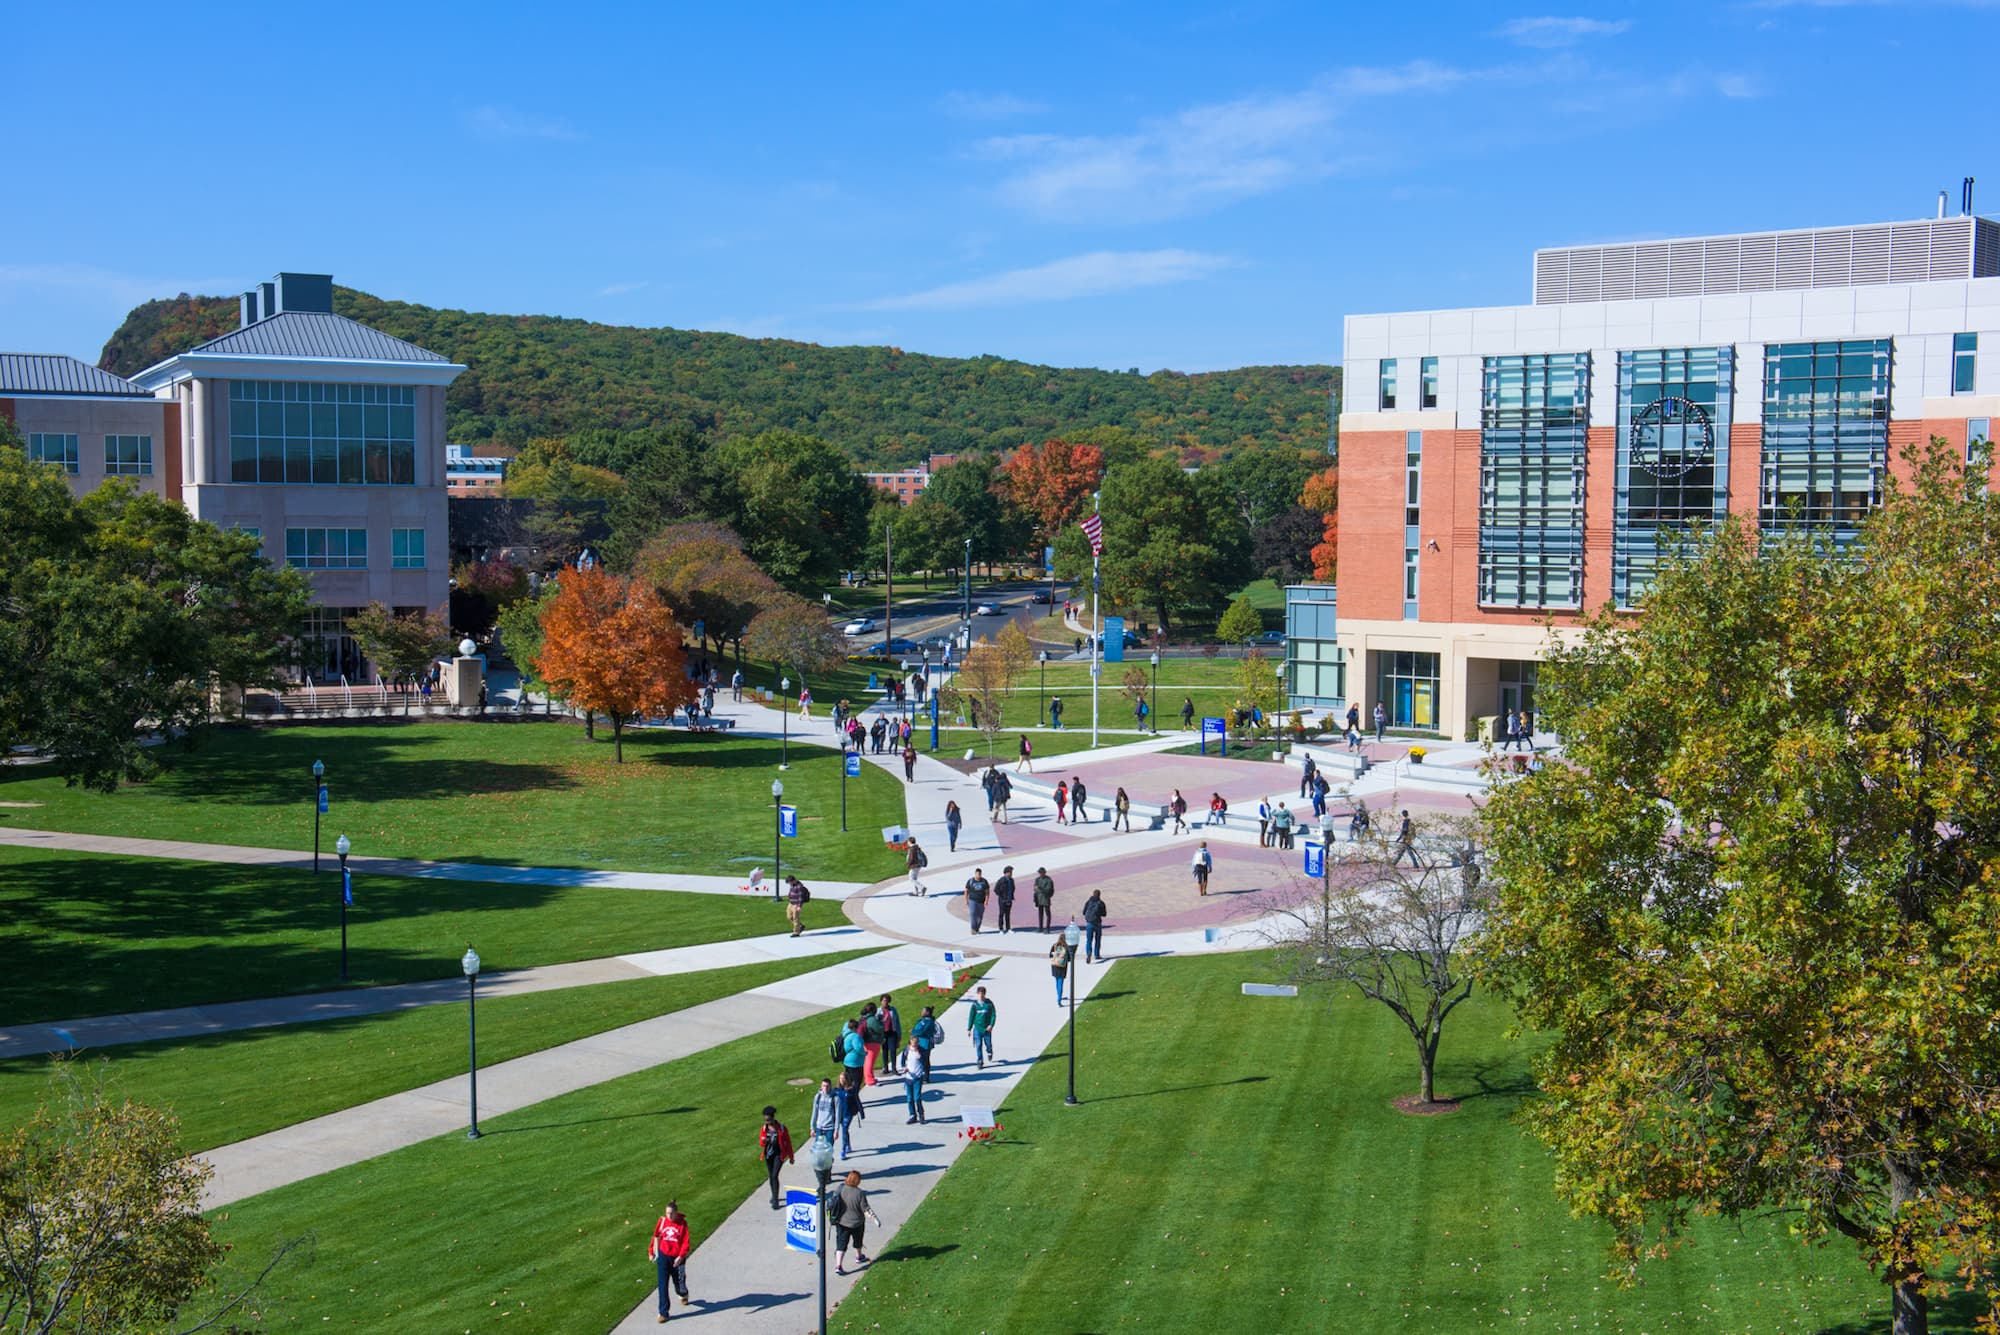 CT students could get automatic admission to state universities under budget bill